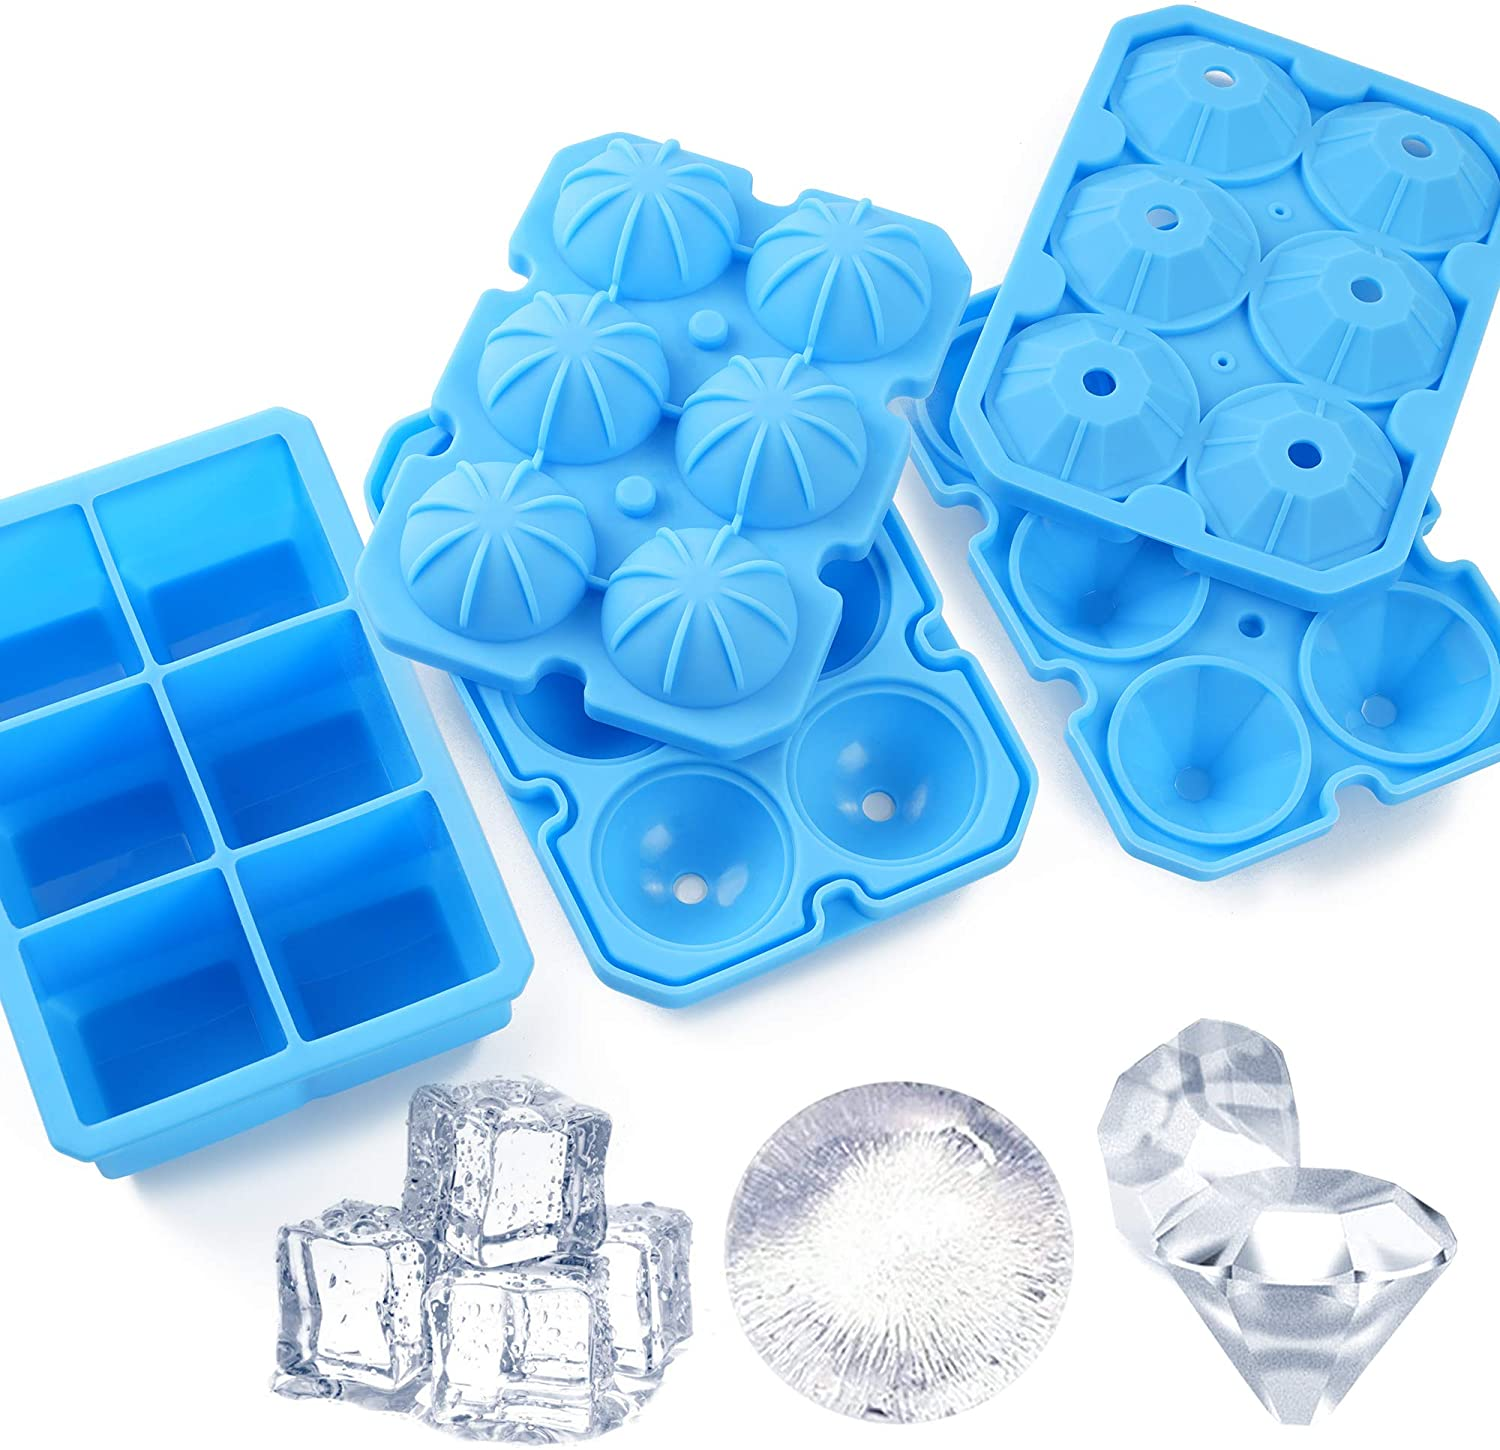 Ice Cube Trays, Meidong 3 Pack Food-Grade Silicone Ice Cube Trays Round Big Ice Balls Square Diamond Ice Cube Trays, Reusable and Easy Release Reusable for Chilling Whiskey Wine Cocktail